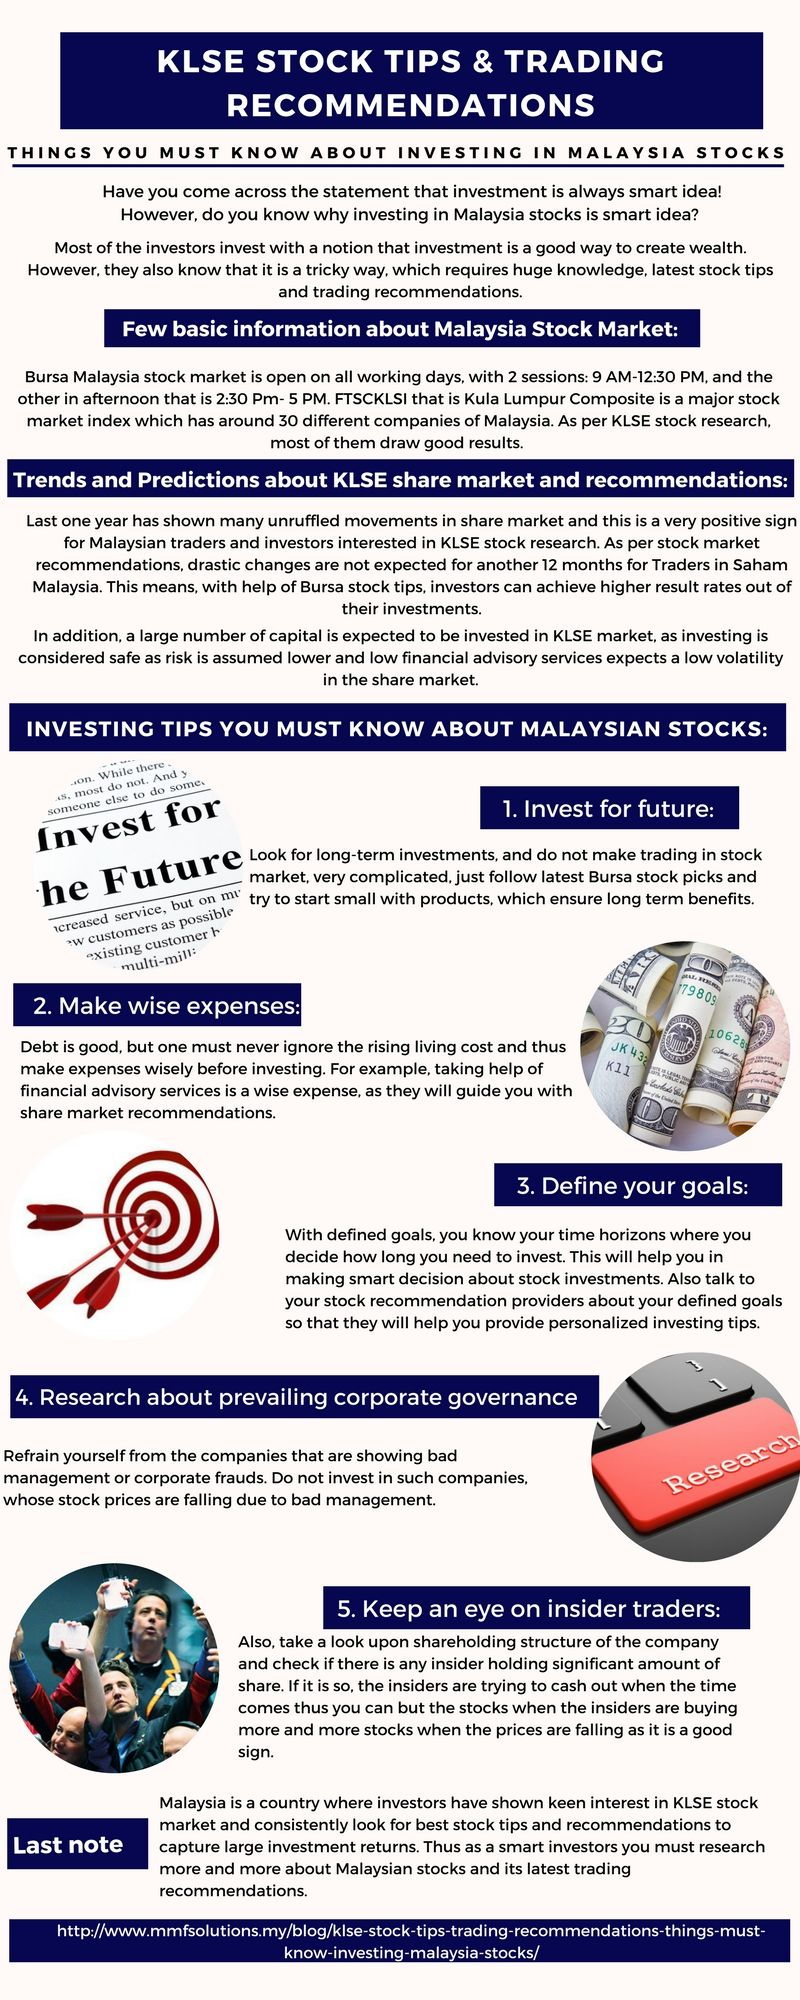 Investing Tips you must know about Malaysian stocks | Infographic